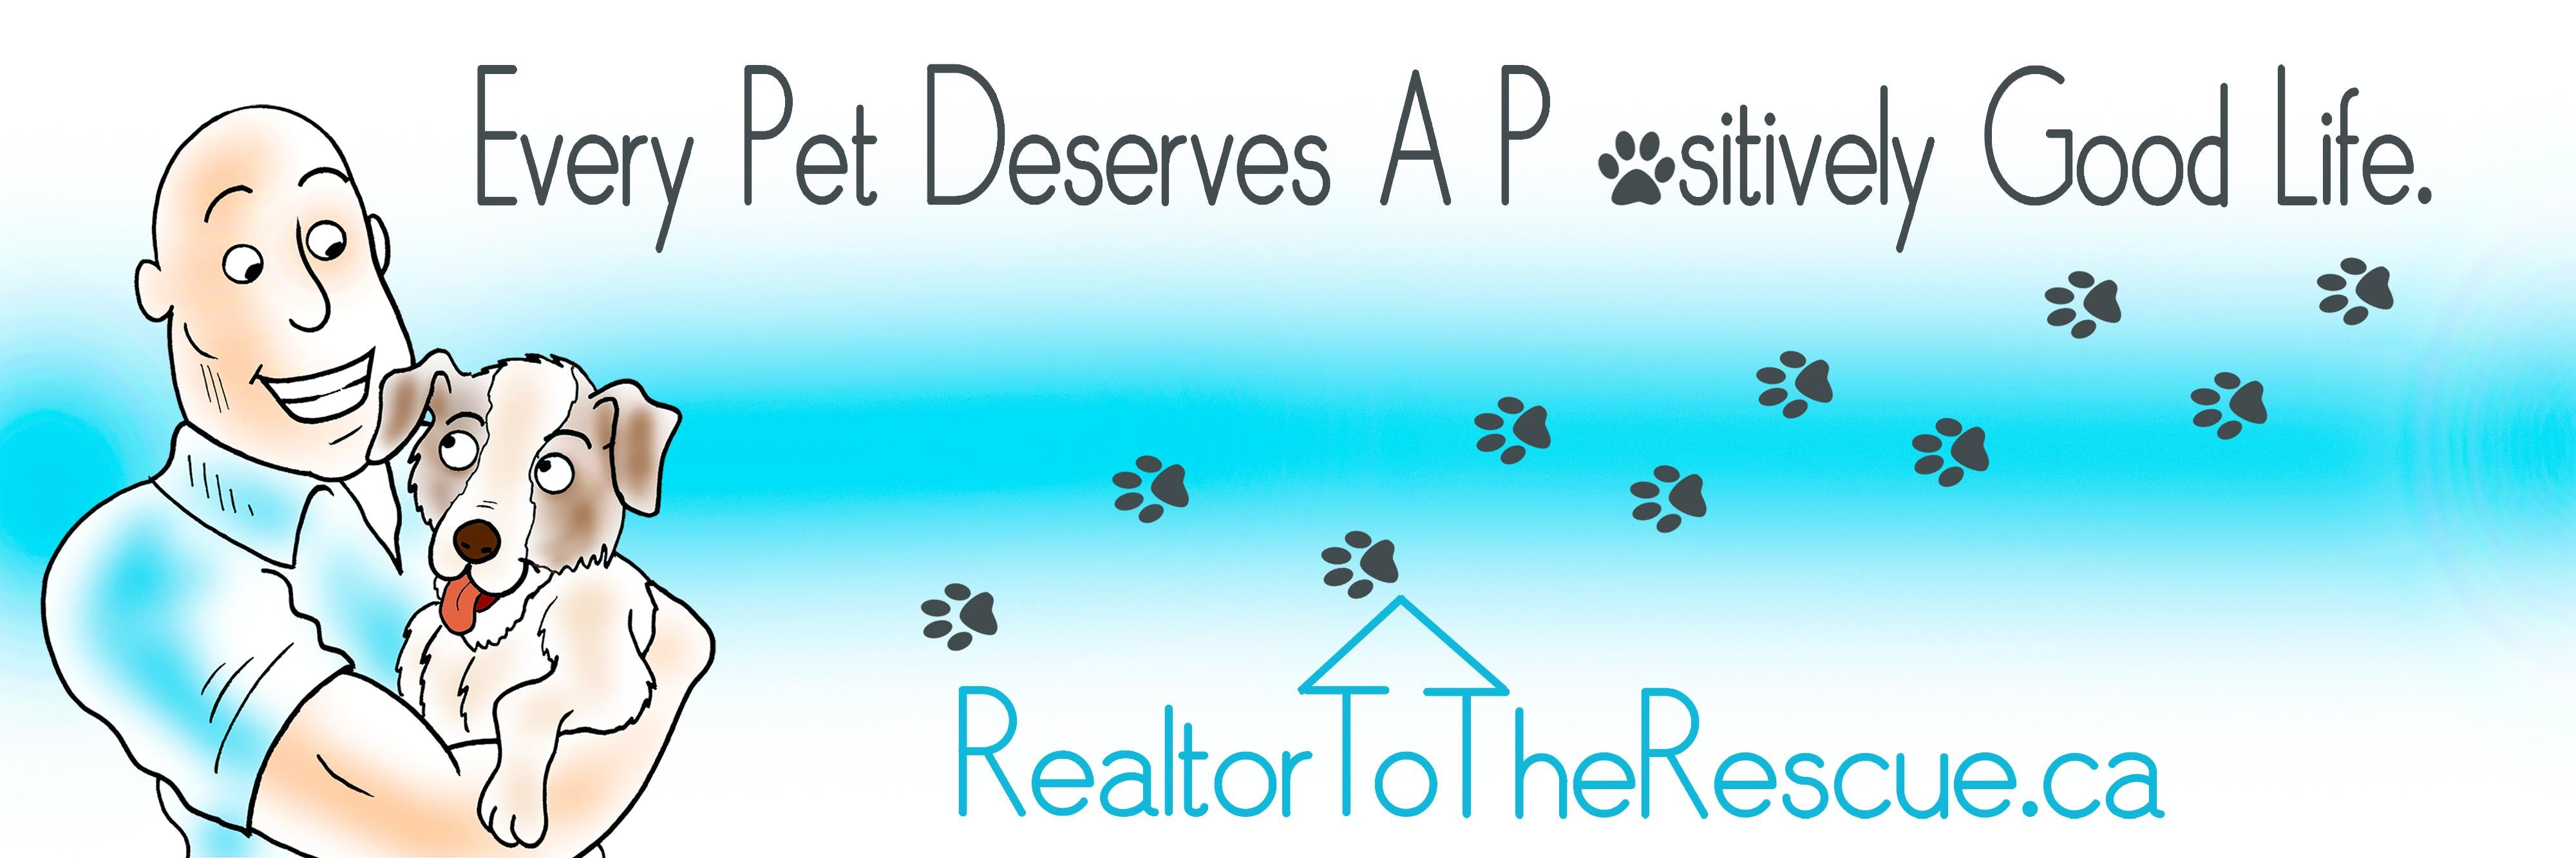 Realtor to the rescue - Rantdog Animation